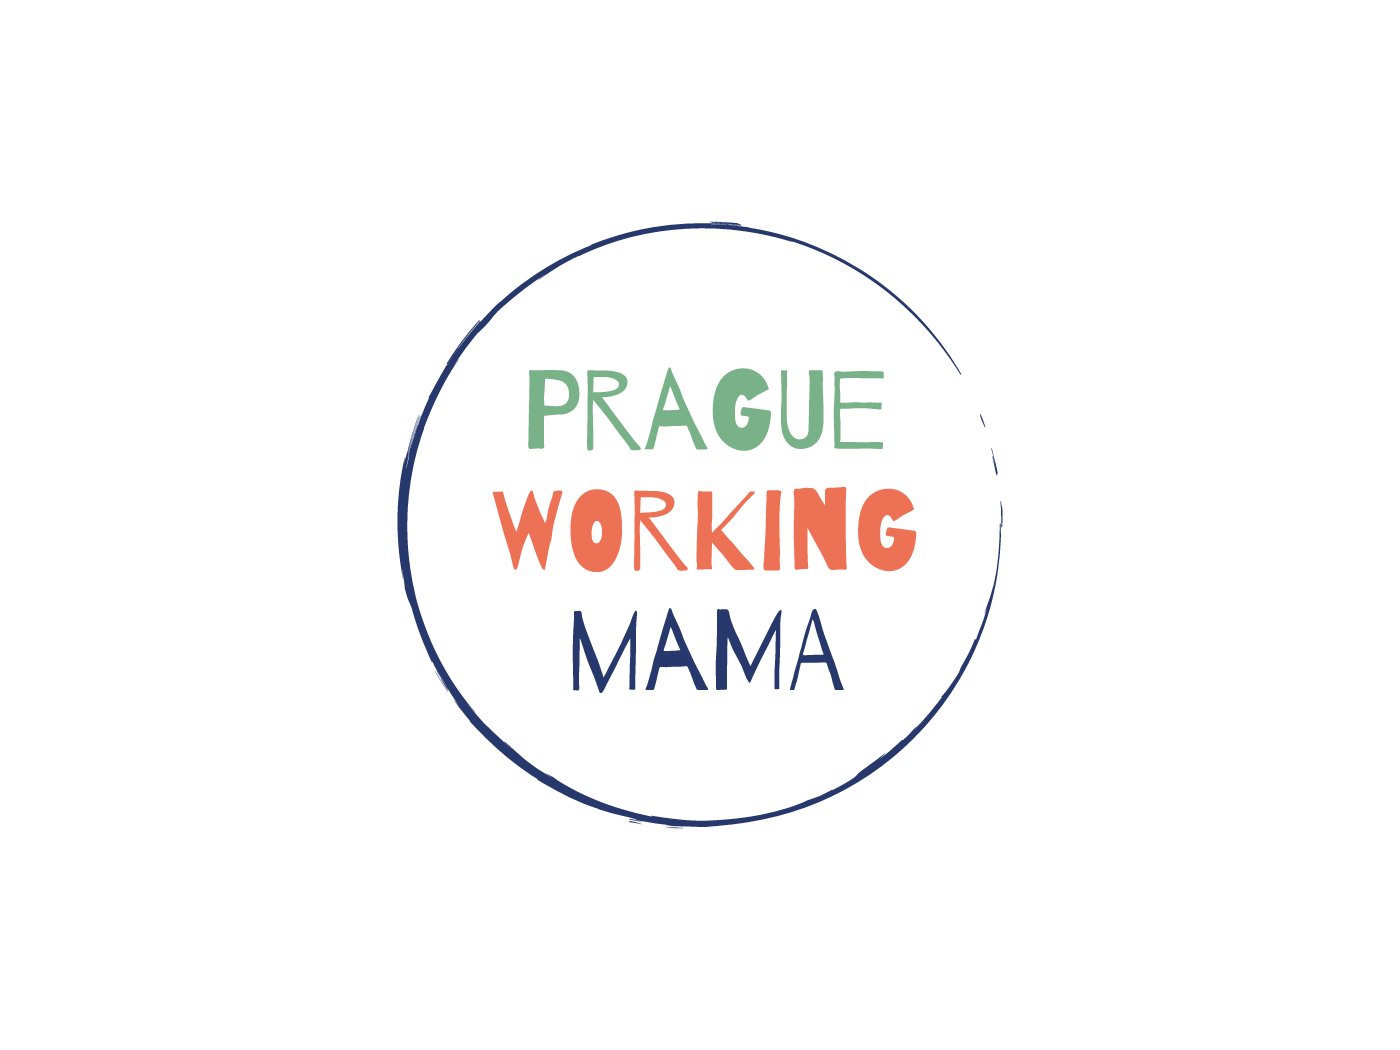 Prague Working Mama Logo Design